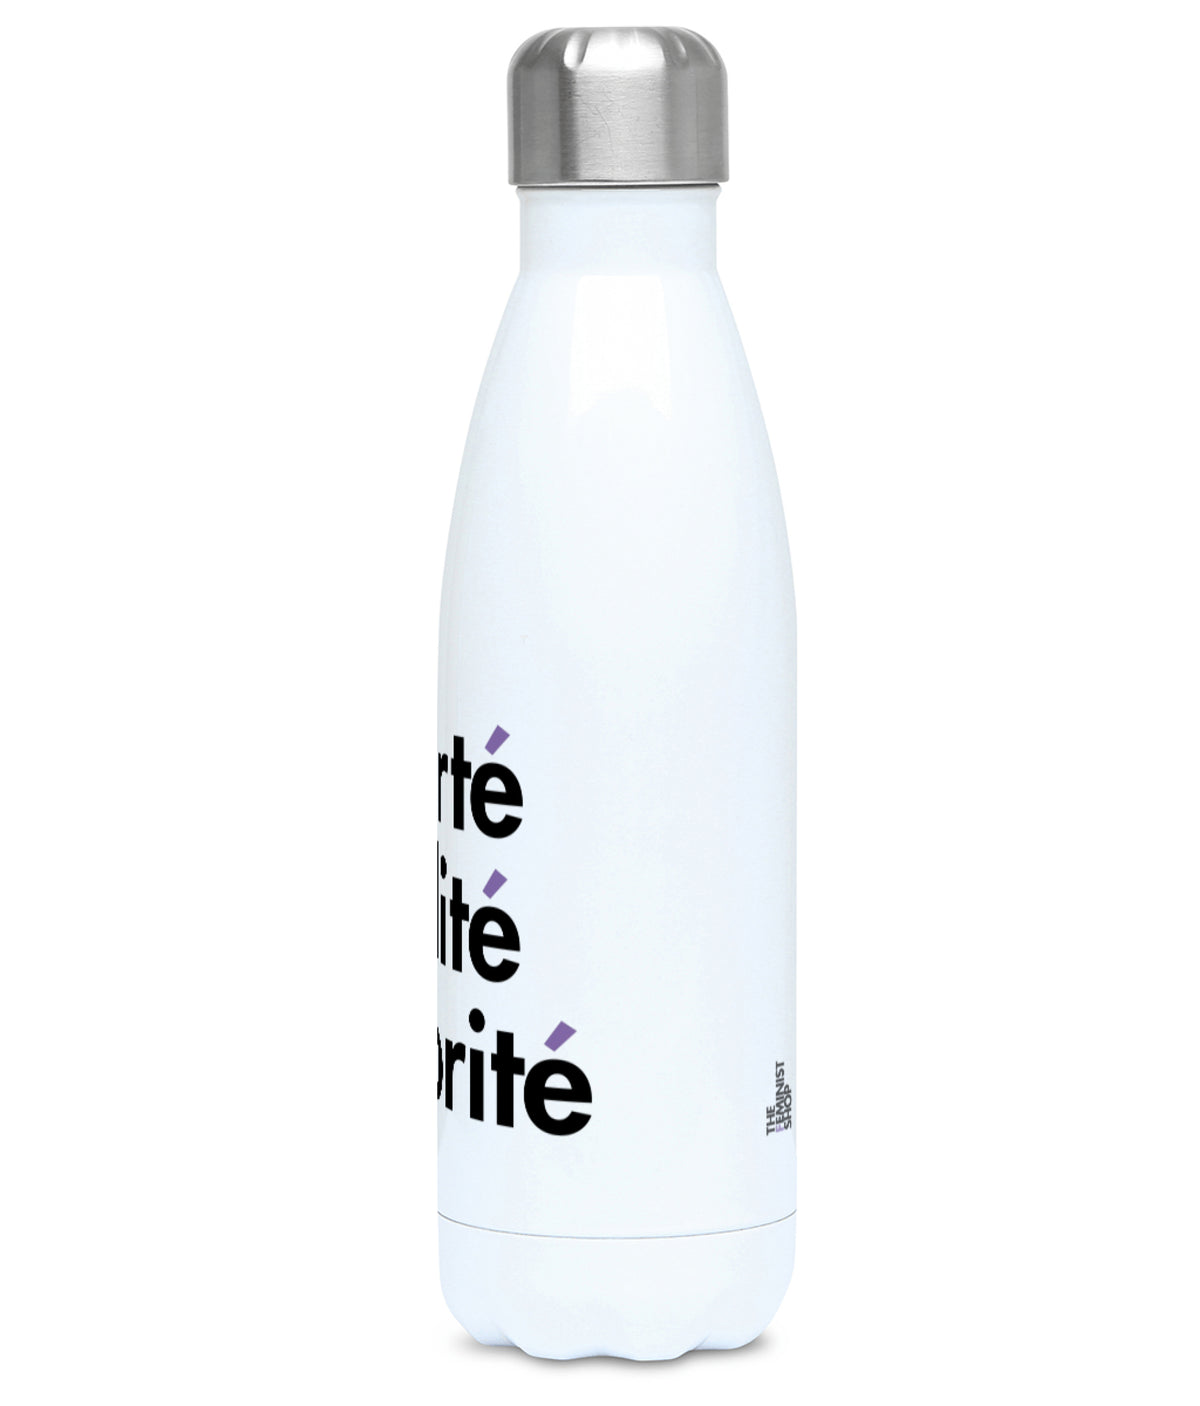 Feminist Water Bottle - Liberté Egalité Sororité - Right